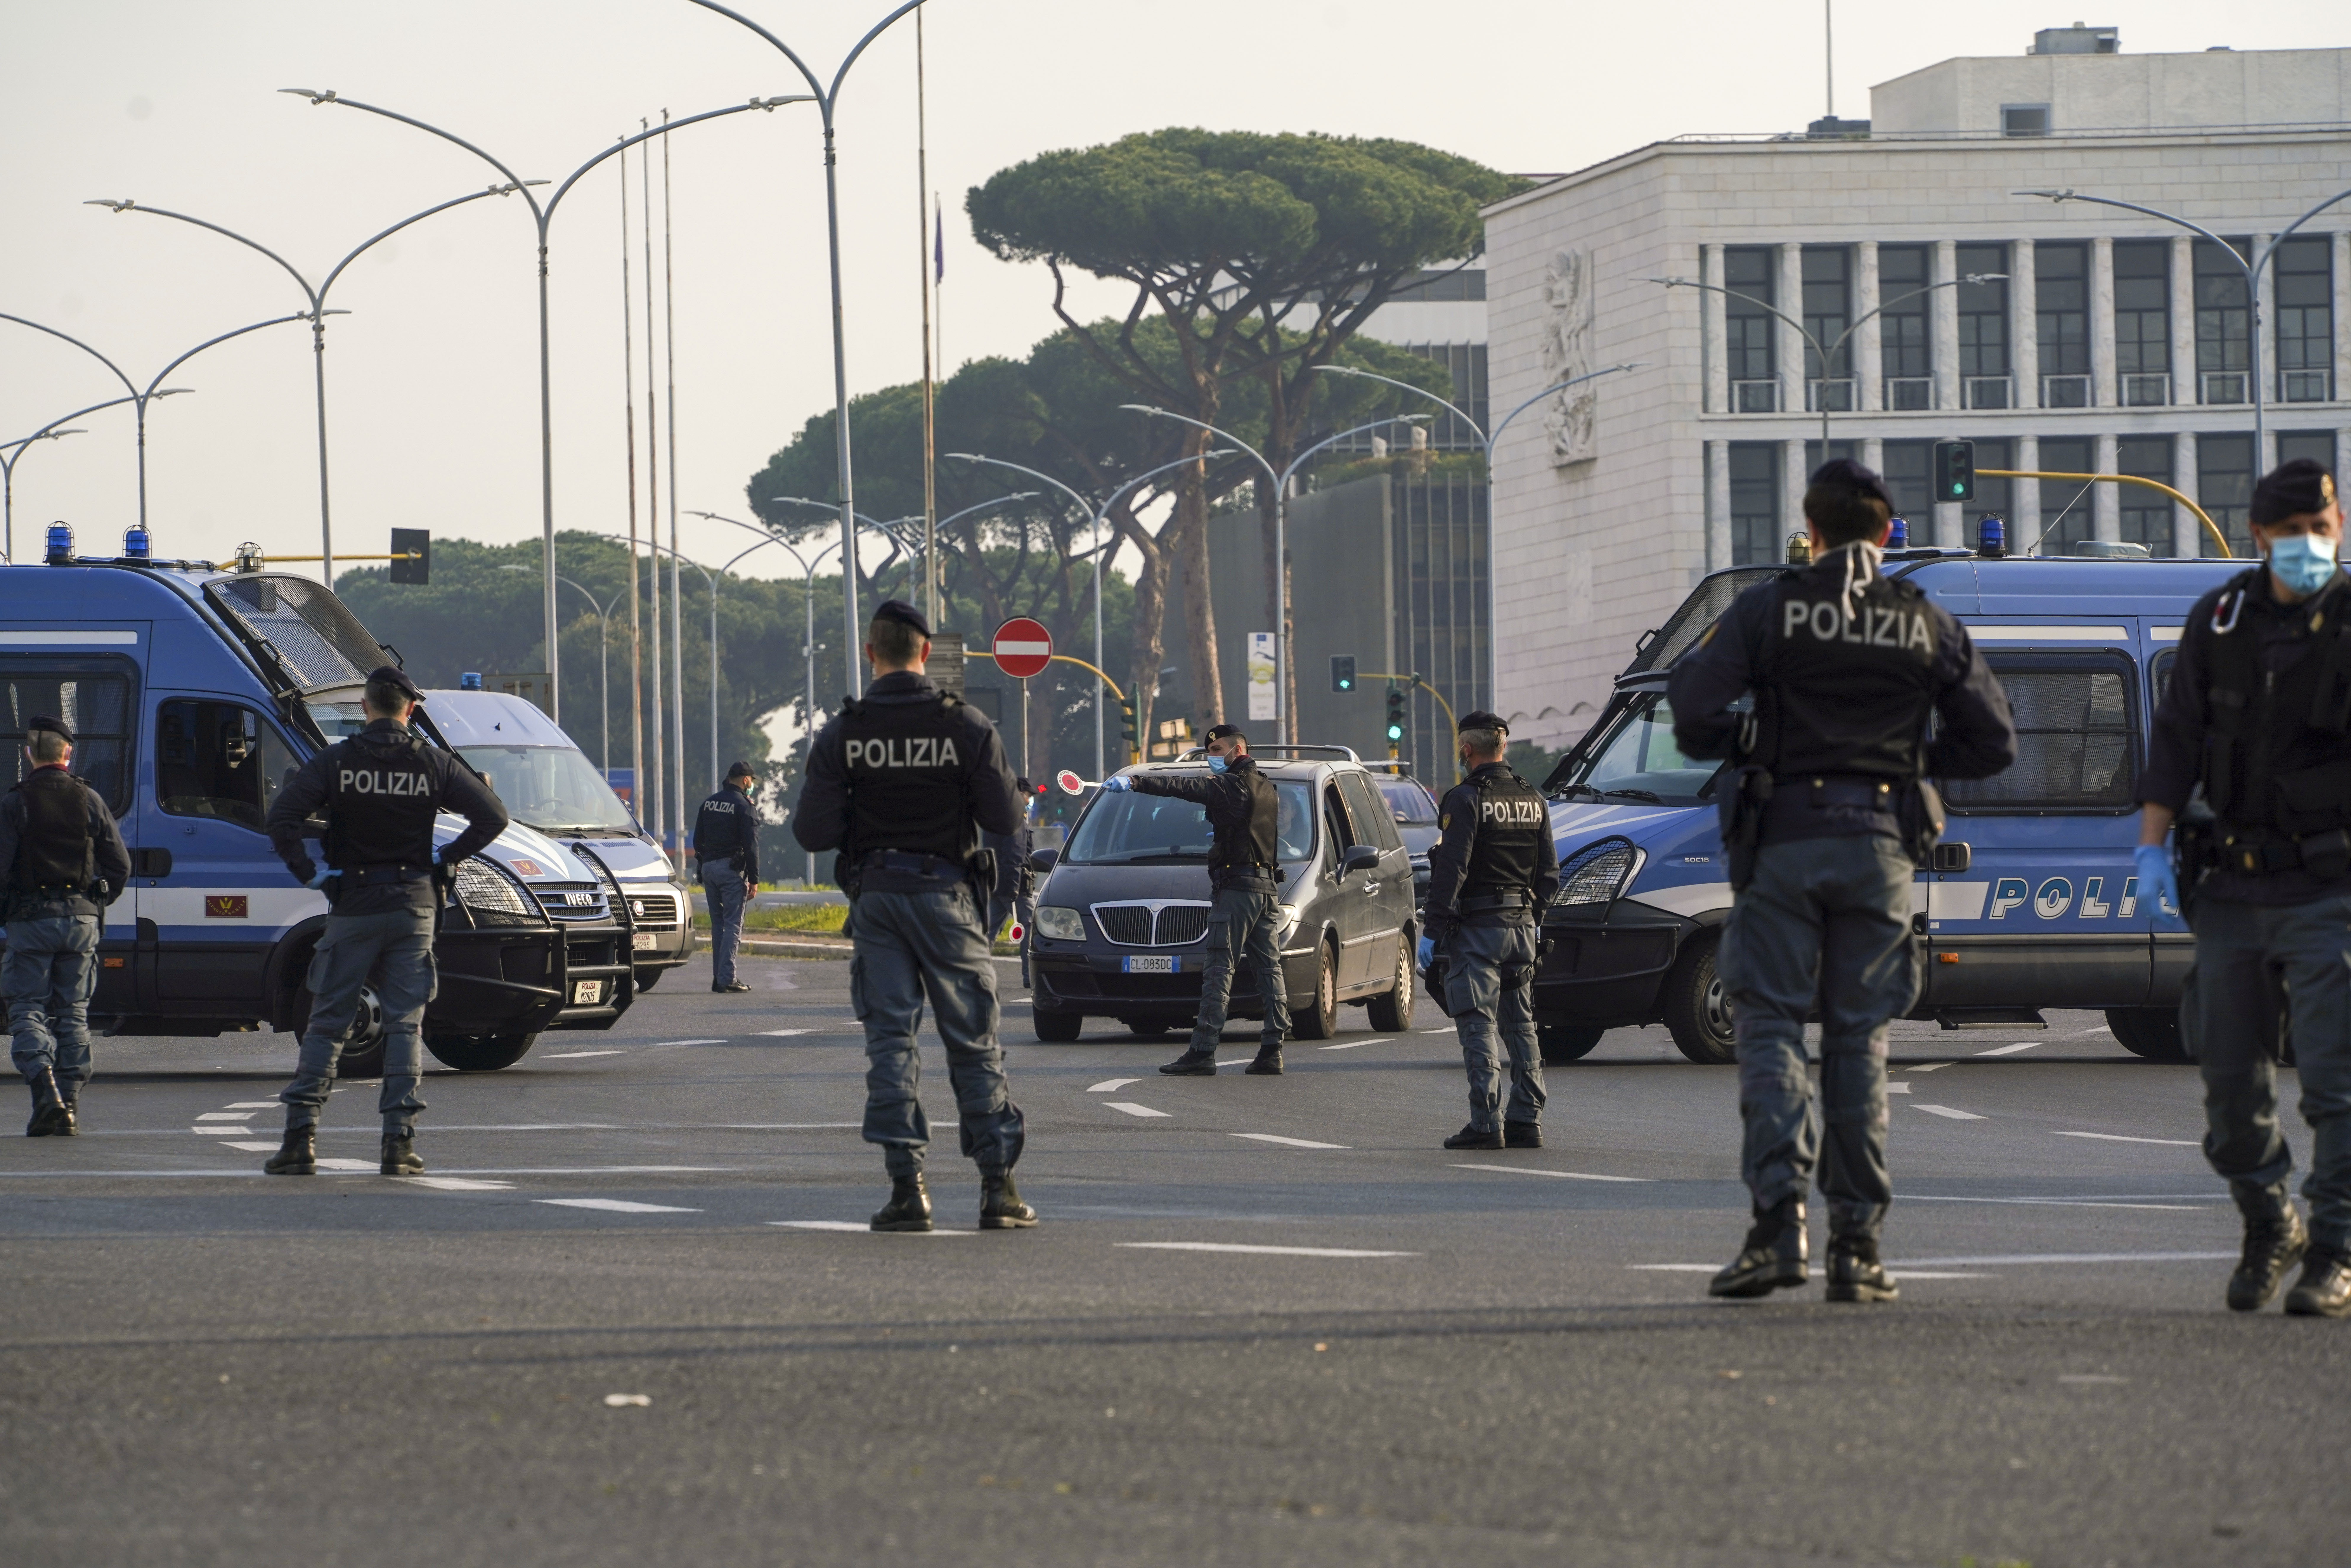 Police officers signal drivers to pull over at a road block in Rome on April 13.